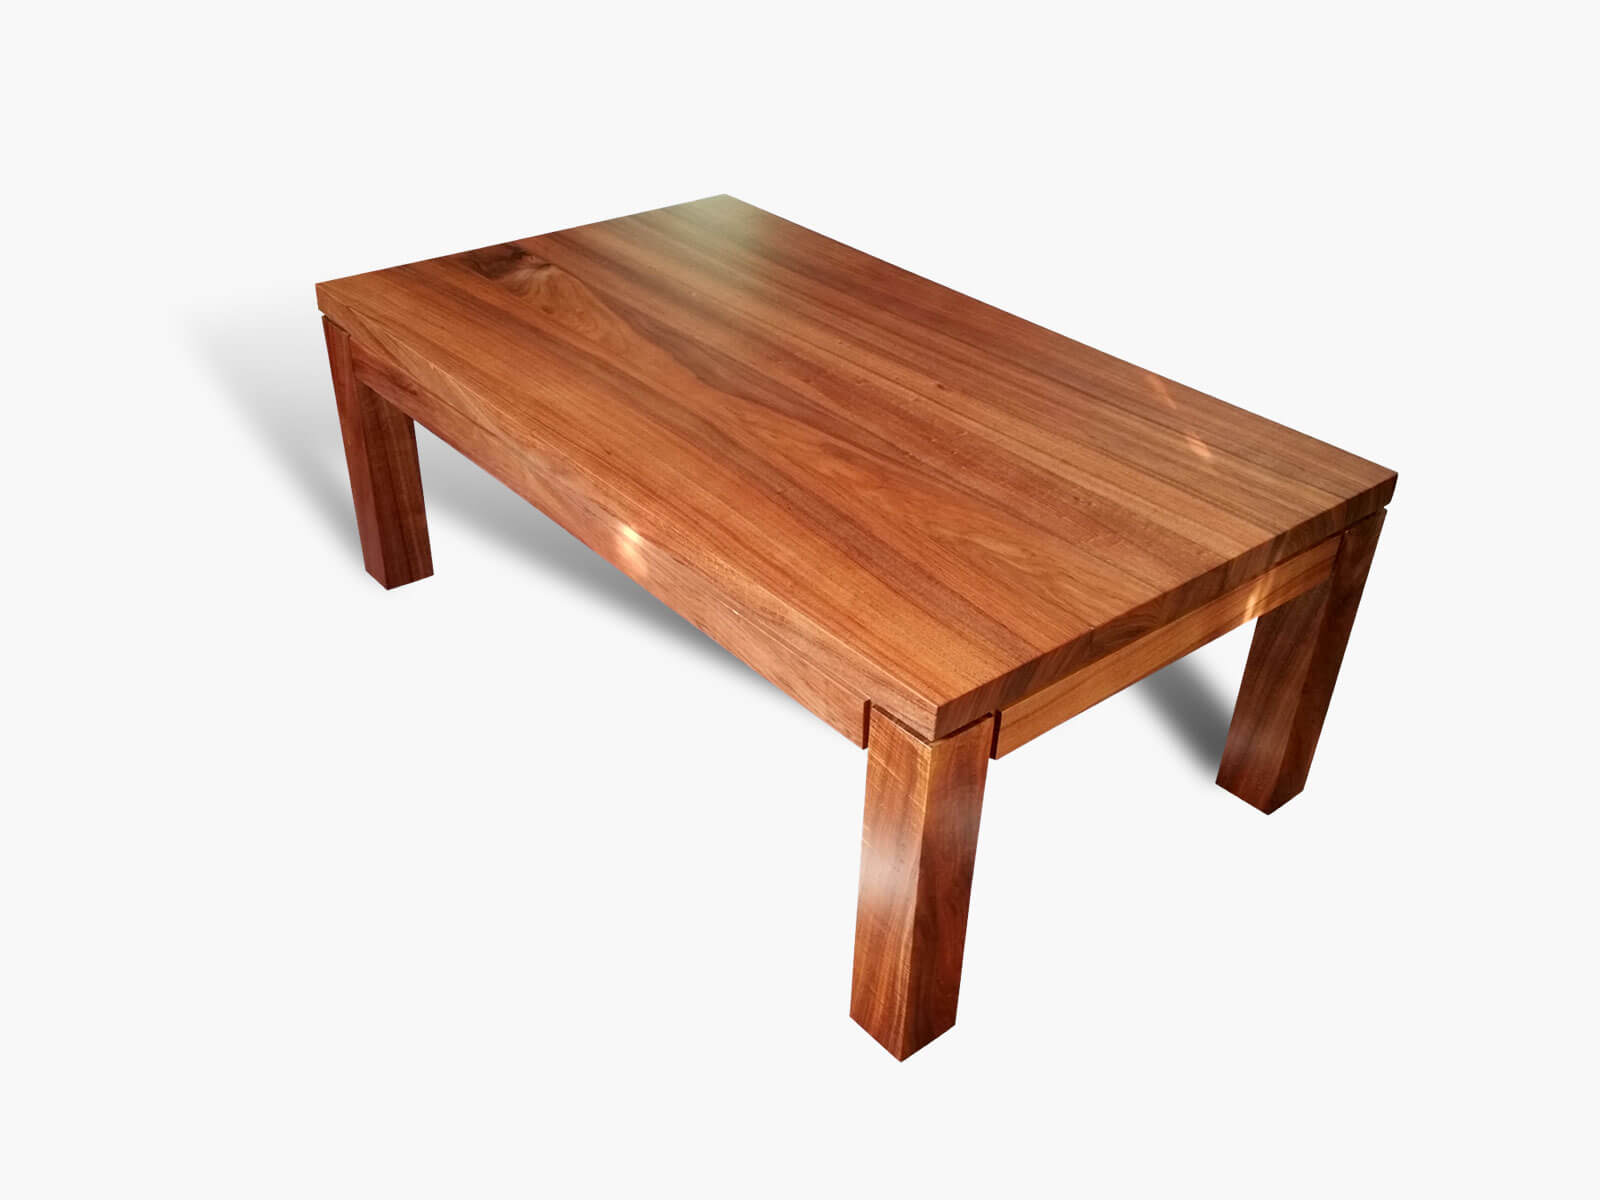 Doonan-Coffee Timber Furniture